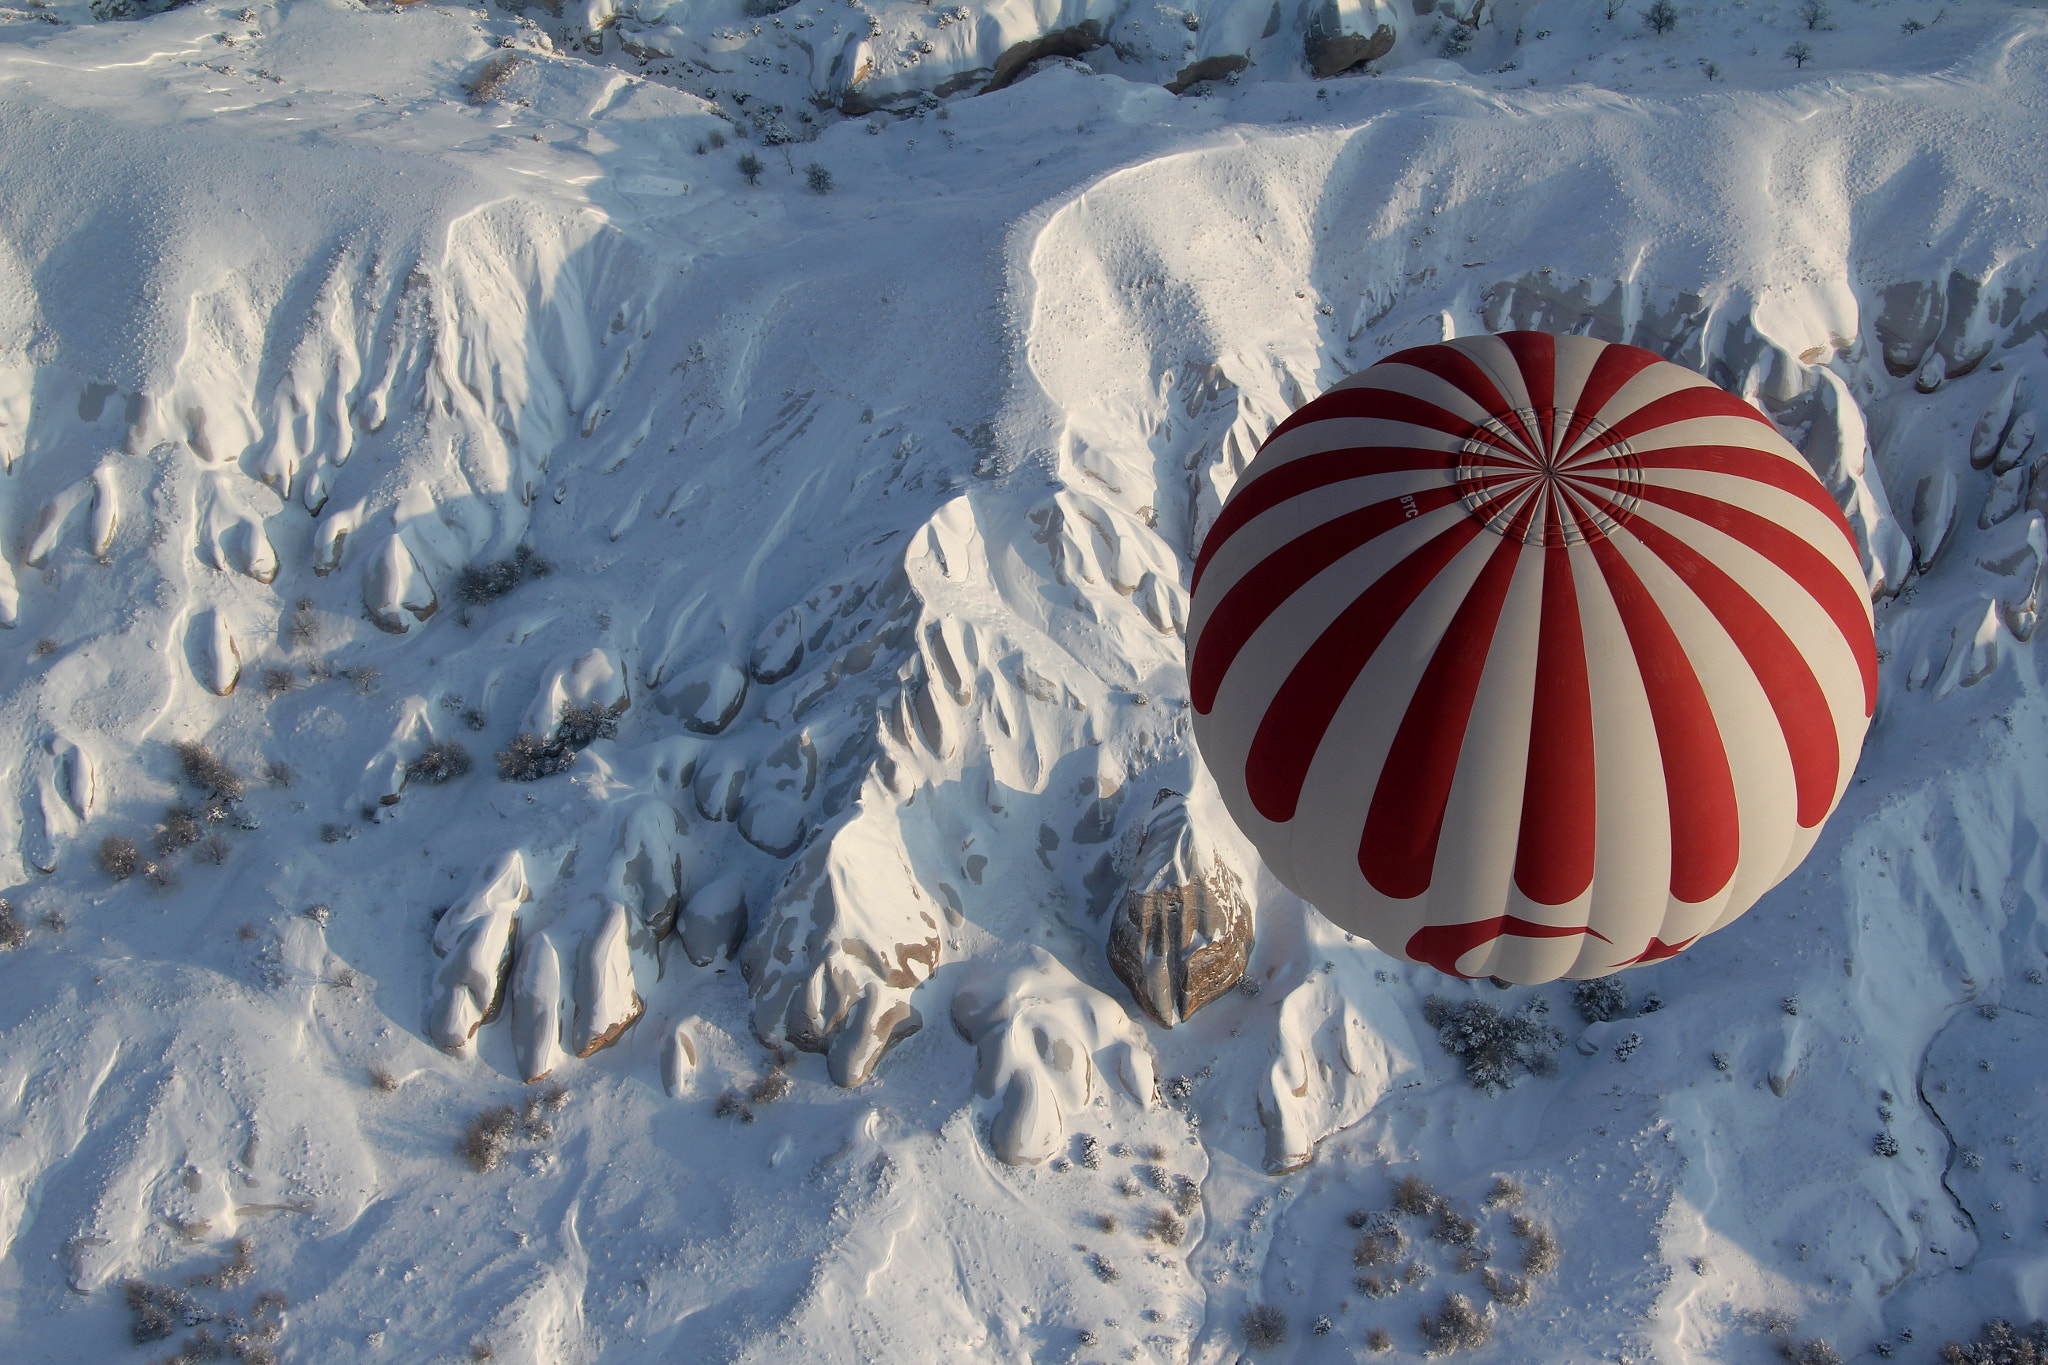 Photograph winter in cappadocia by Arda Cakir on 500px